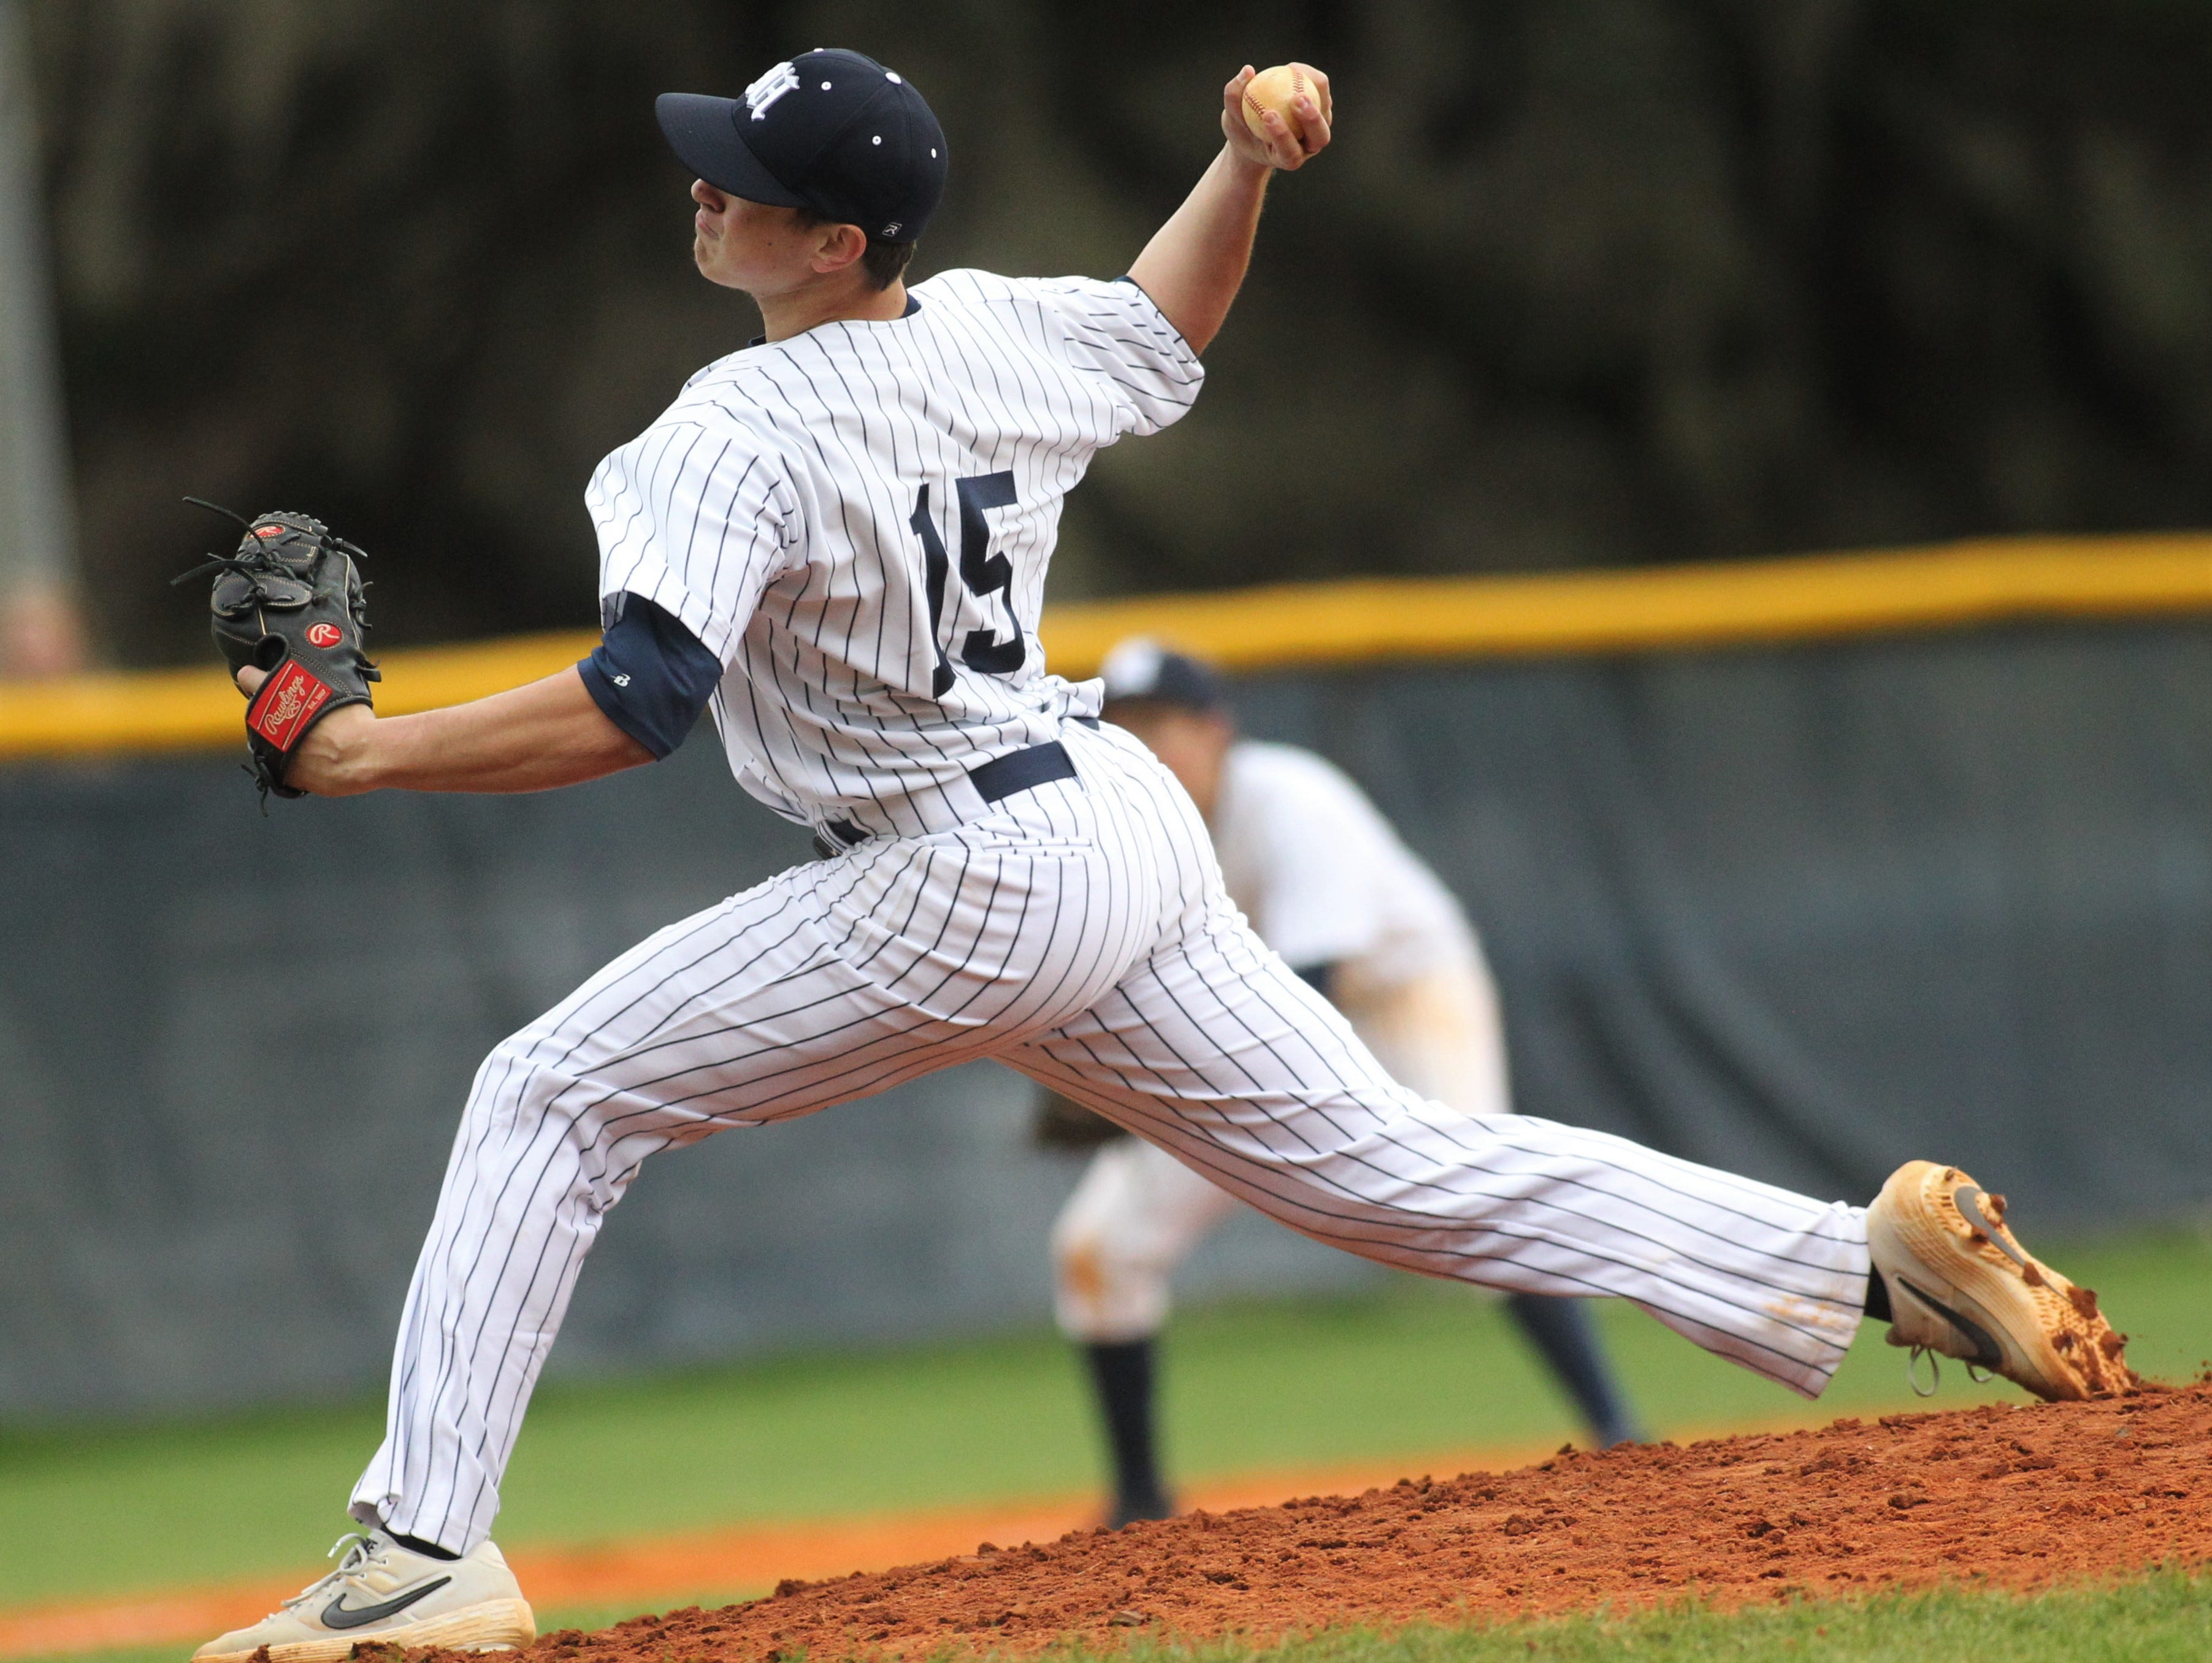 Maclay senior Jason Norris pitches in relief as Liberty County's baseball team went on the road to beat Maclay 8-2 on Saturday, March 16, 2019. The Bulldogs played their first game following their head coach Corey Crum's tragic death six days ago.